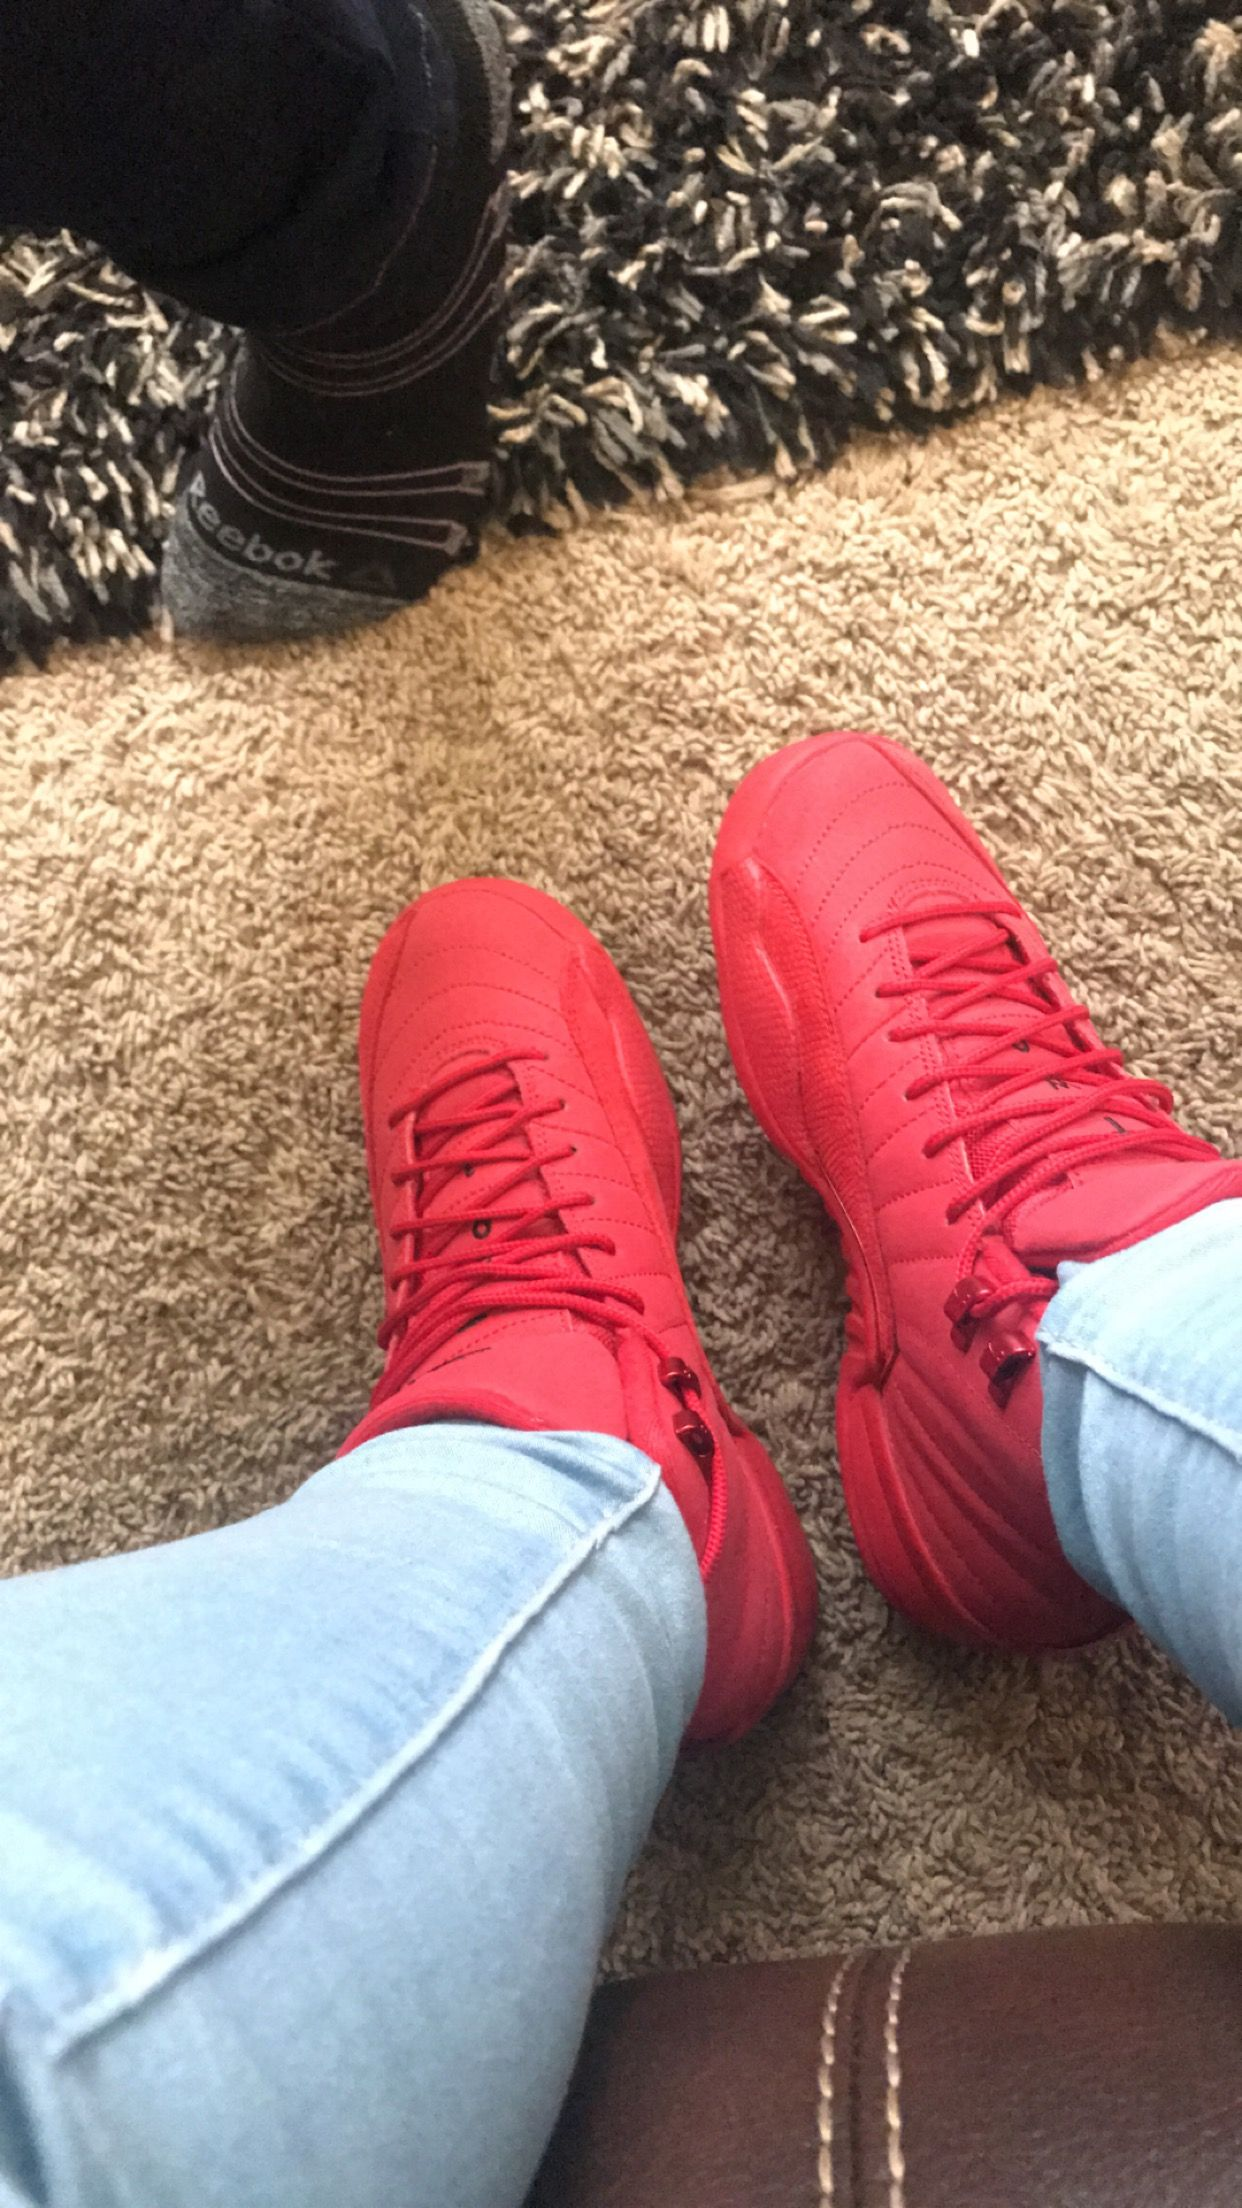 all red jordan 12 outfit